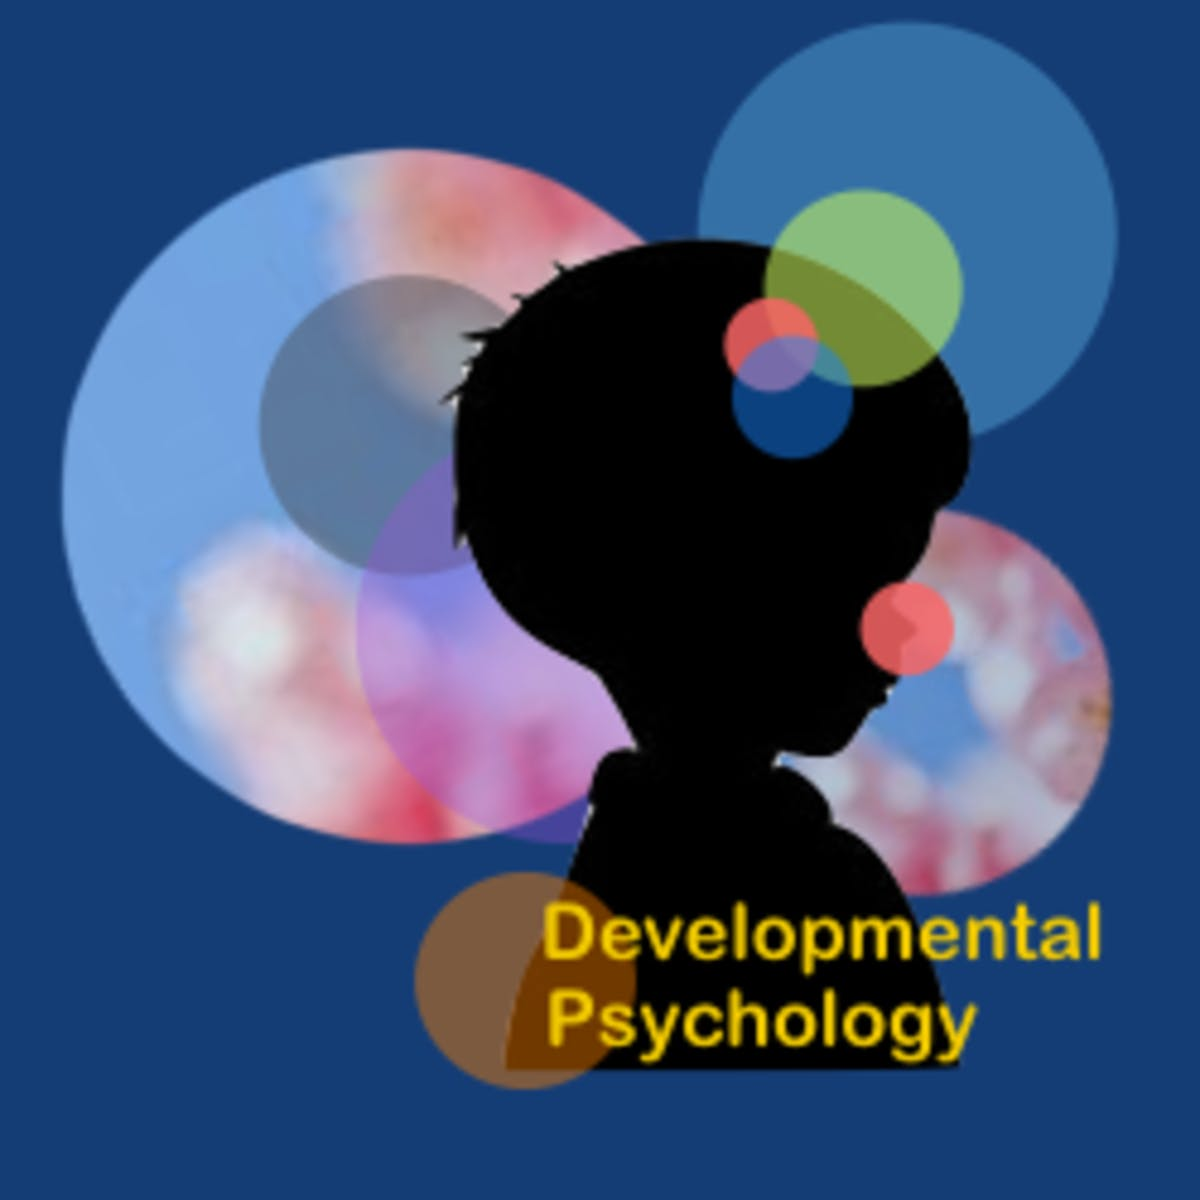 發展心理學:哲學觀與方法論 (Developmental Psychology: Philosophical Bases and Methodology)